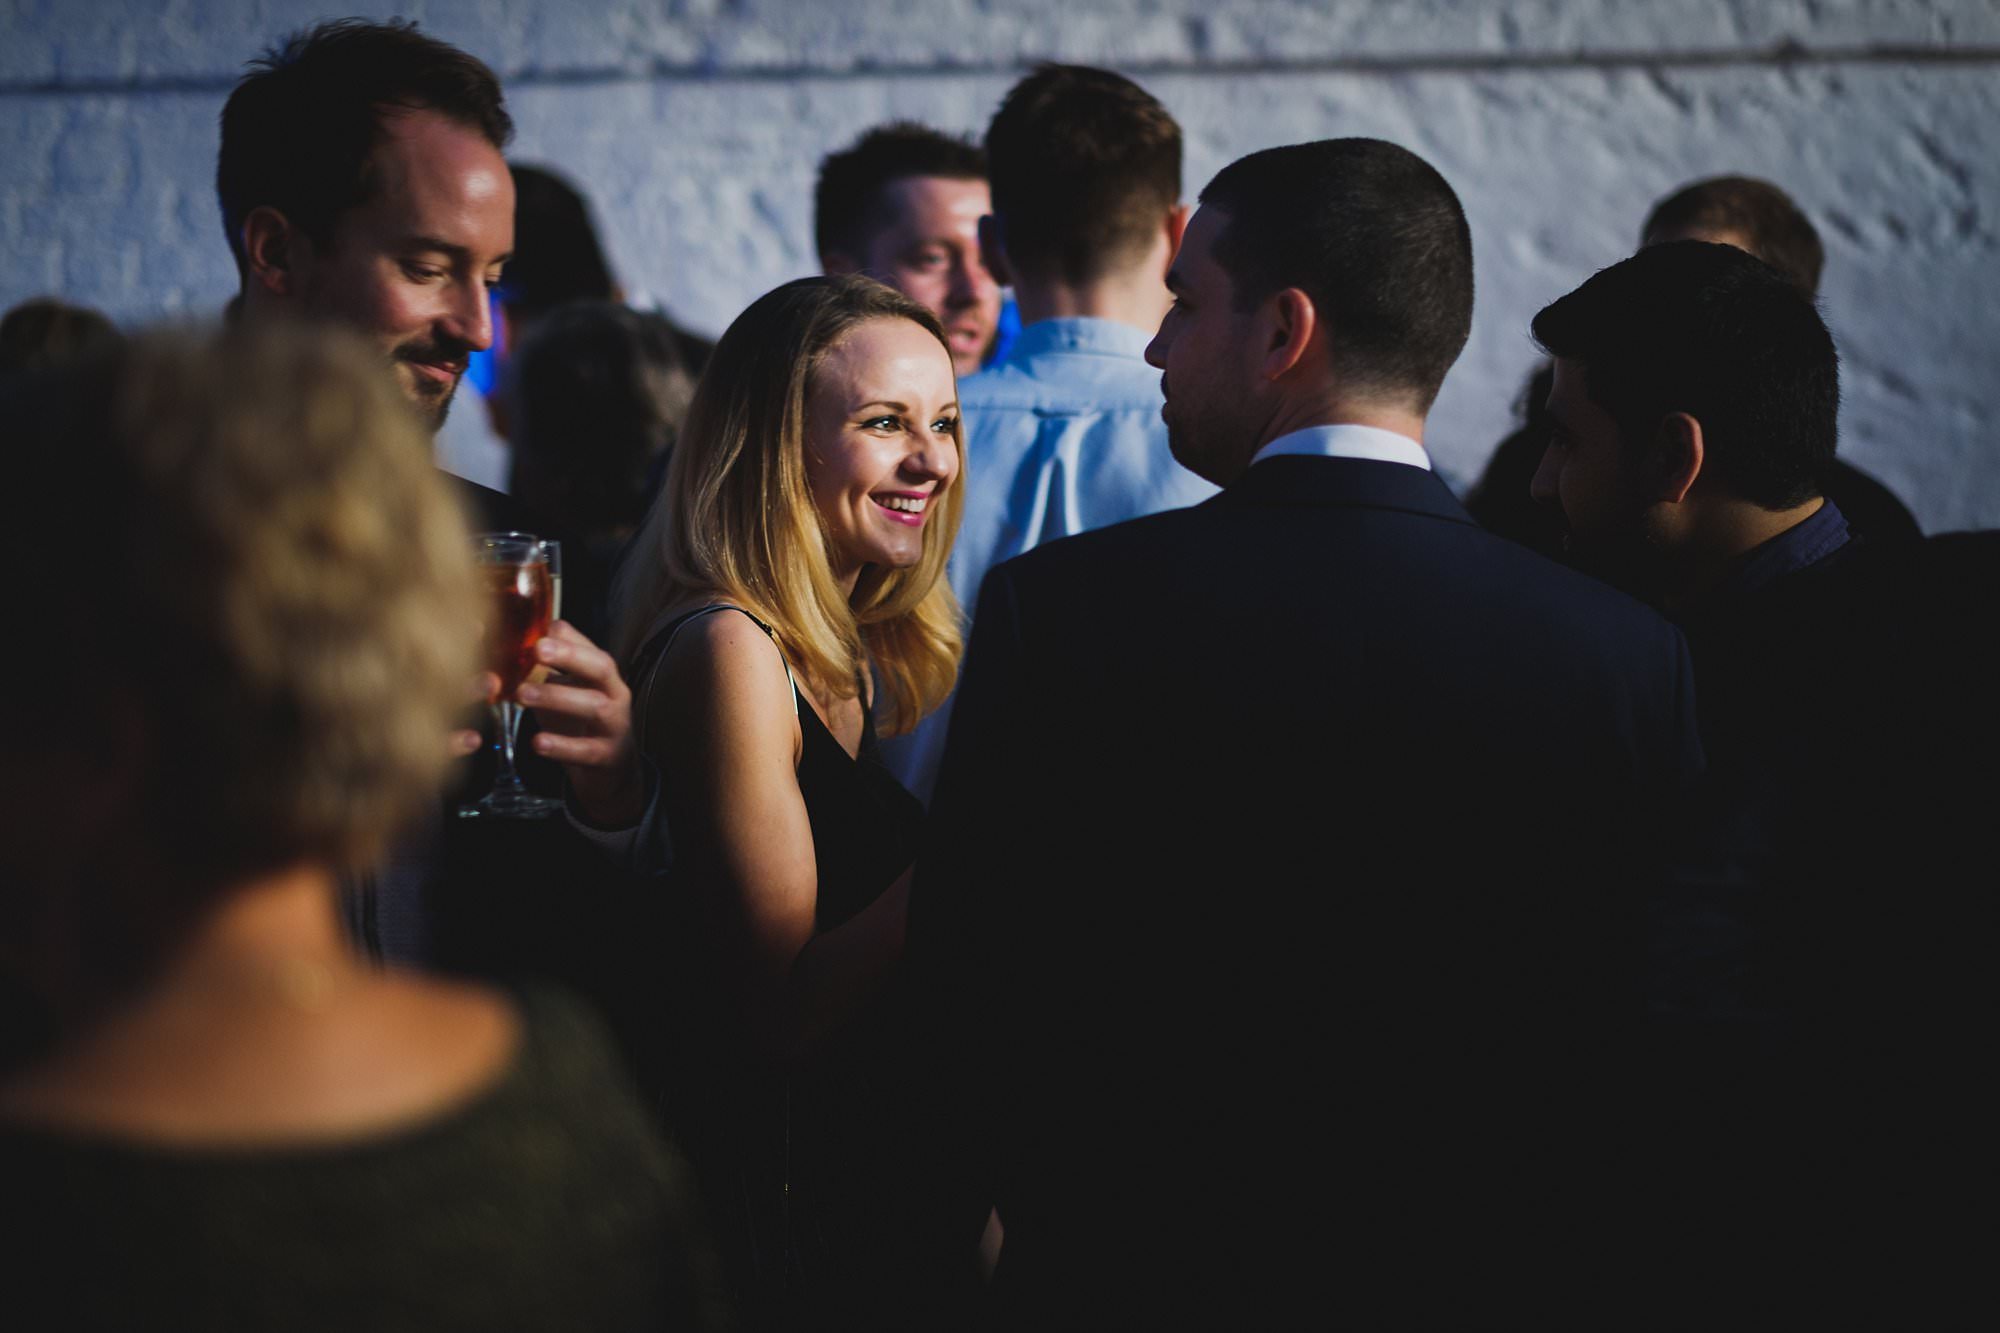 london party photographer hoxton arches 010 - An Elopement Reception at Hoxton Arches